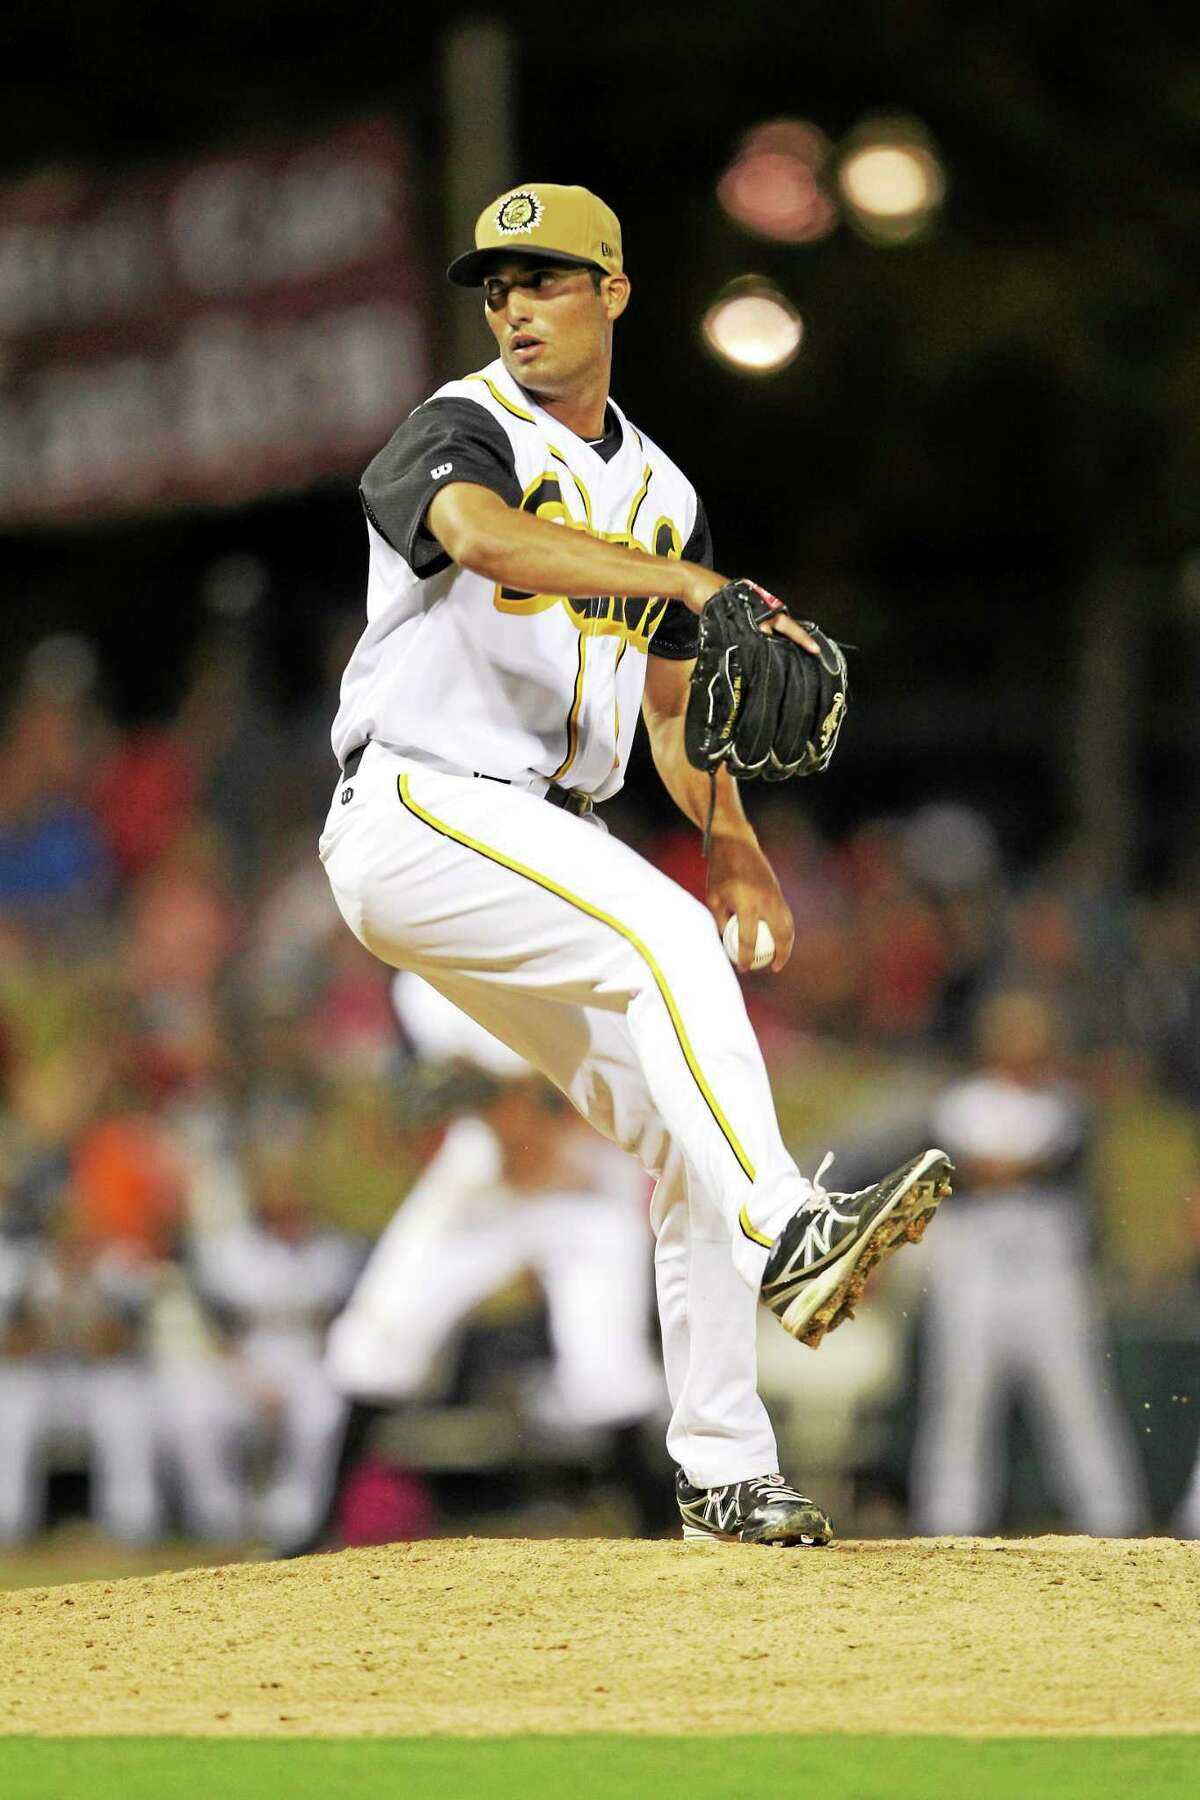 Madison native and UConn product Greg Nappo is 3-0 with a 2.01 ERA for the Double-A Jacksonville Suns this season.